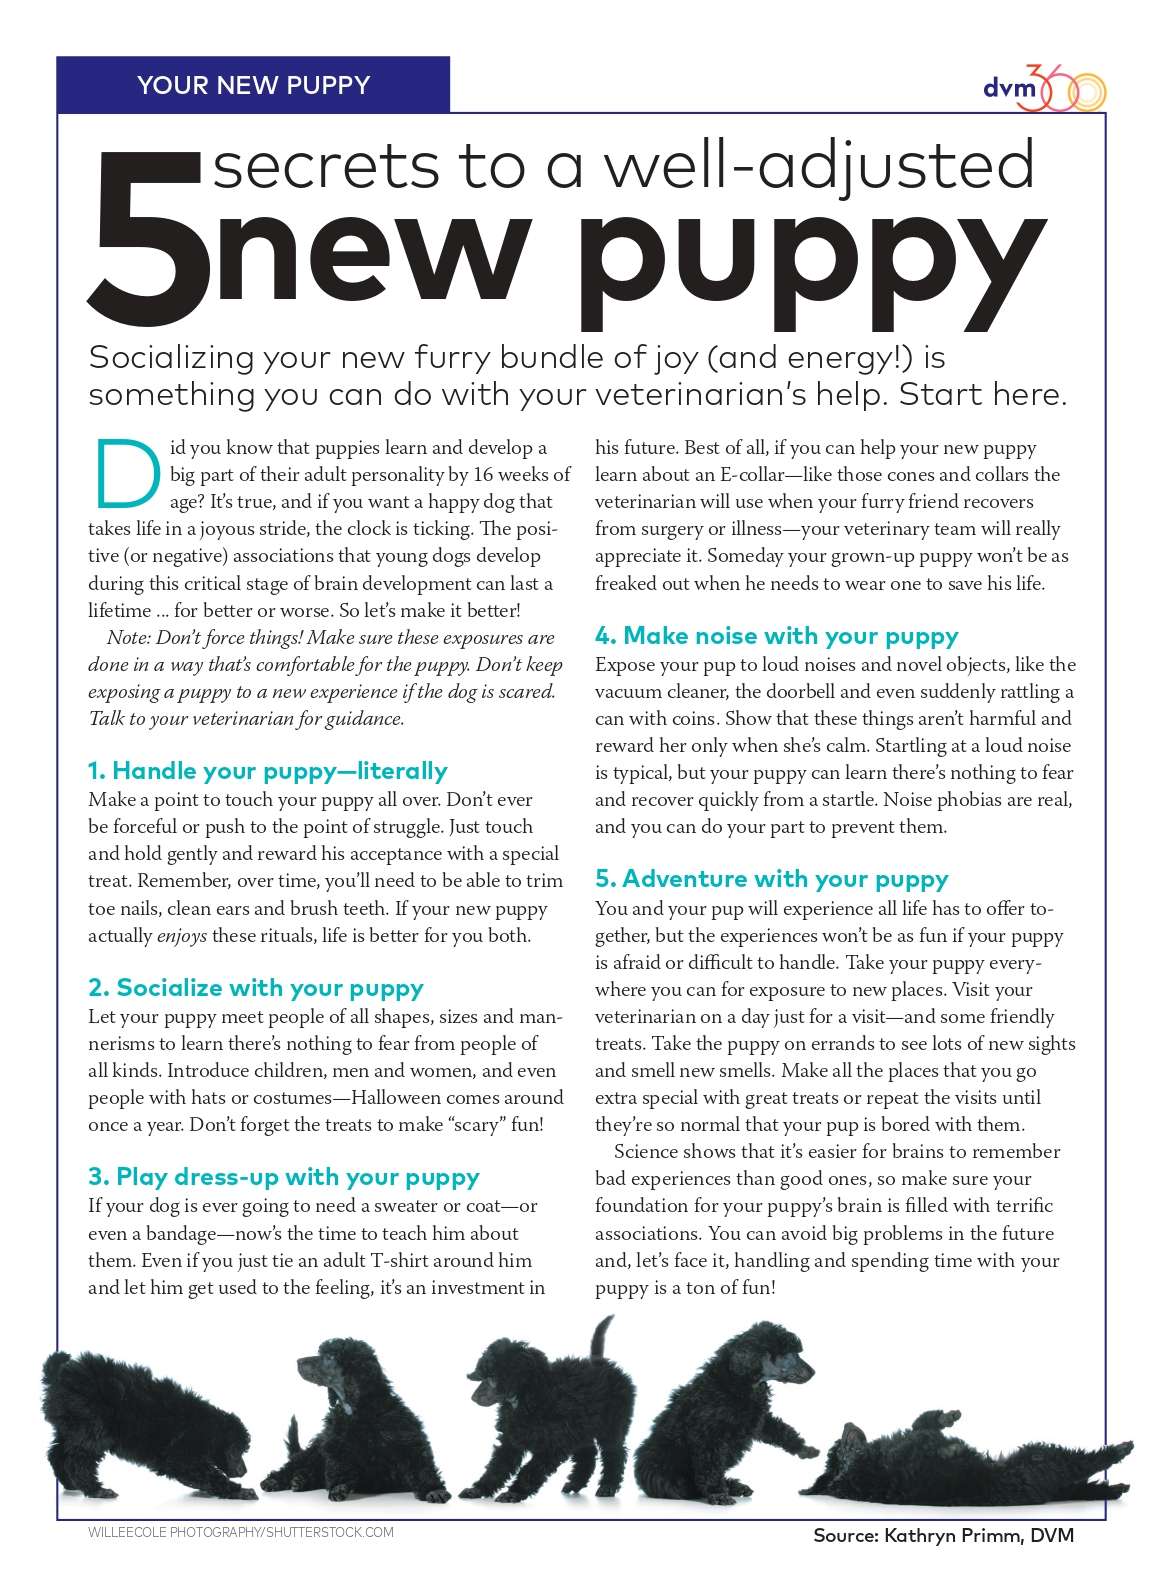 5 Secrets to a well-adjusted new puppy